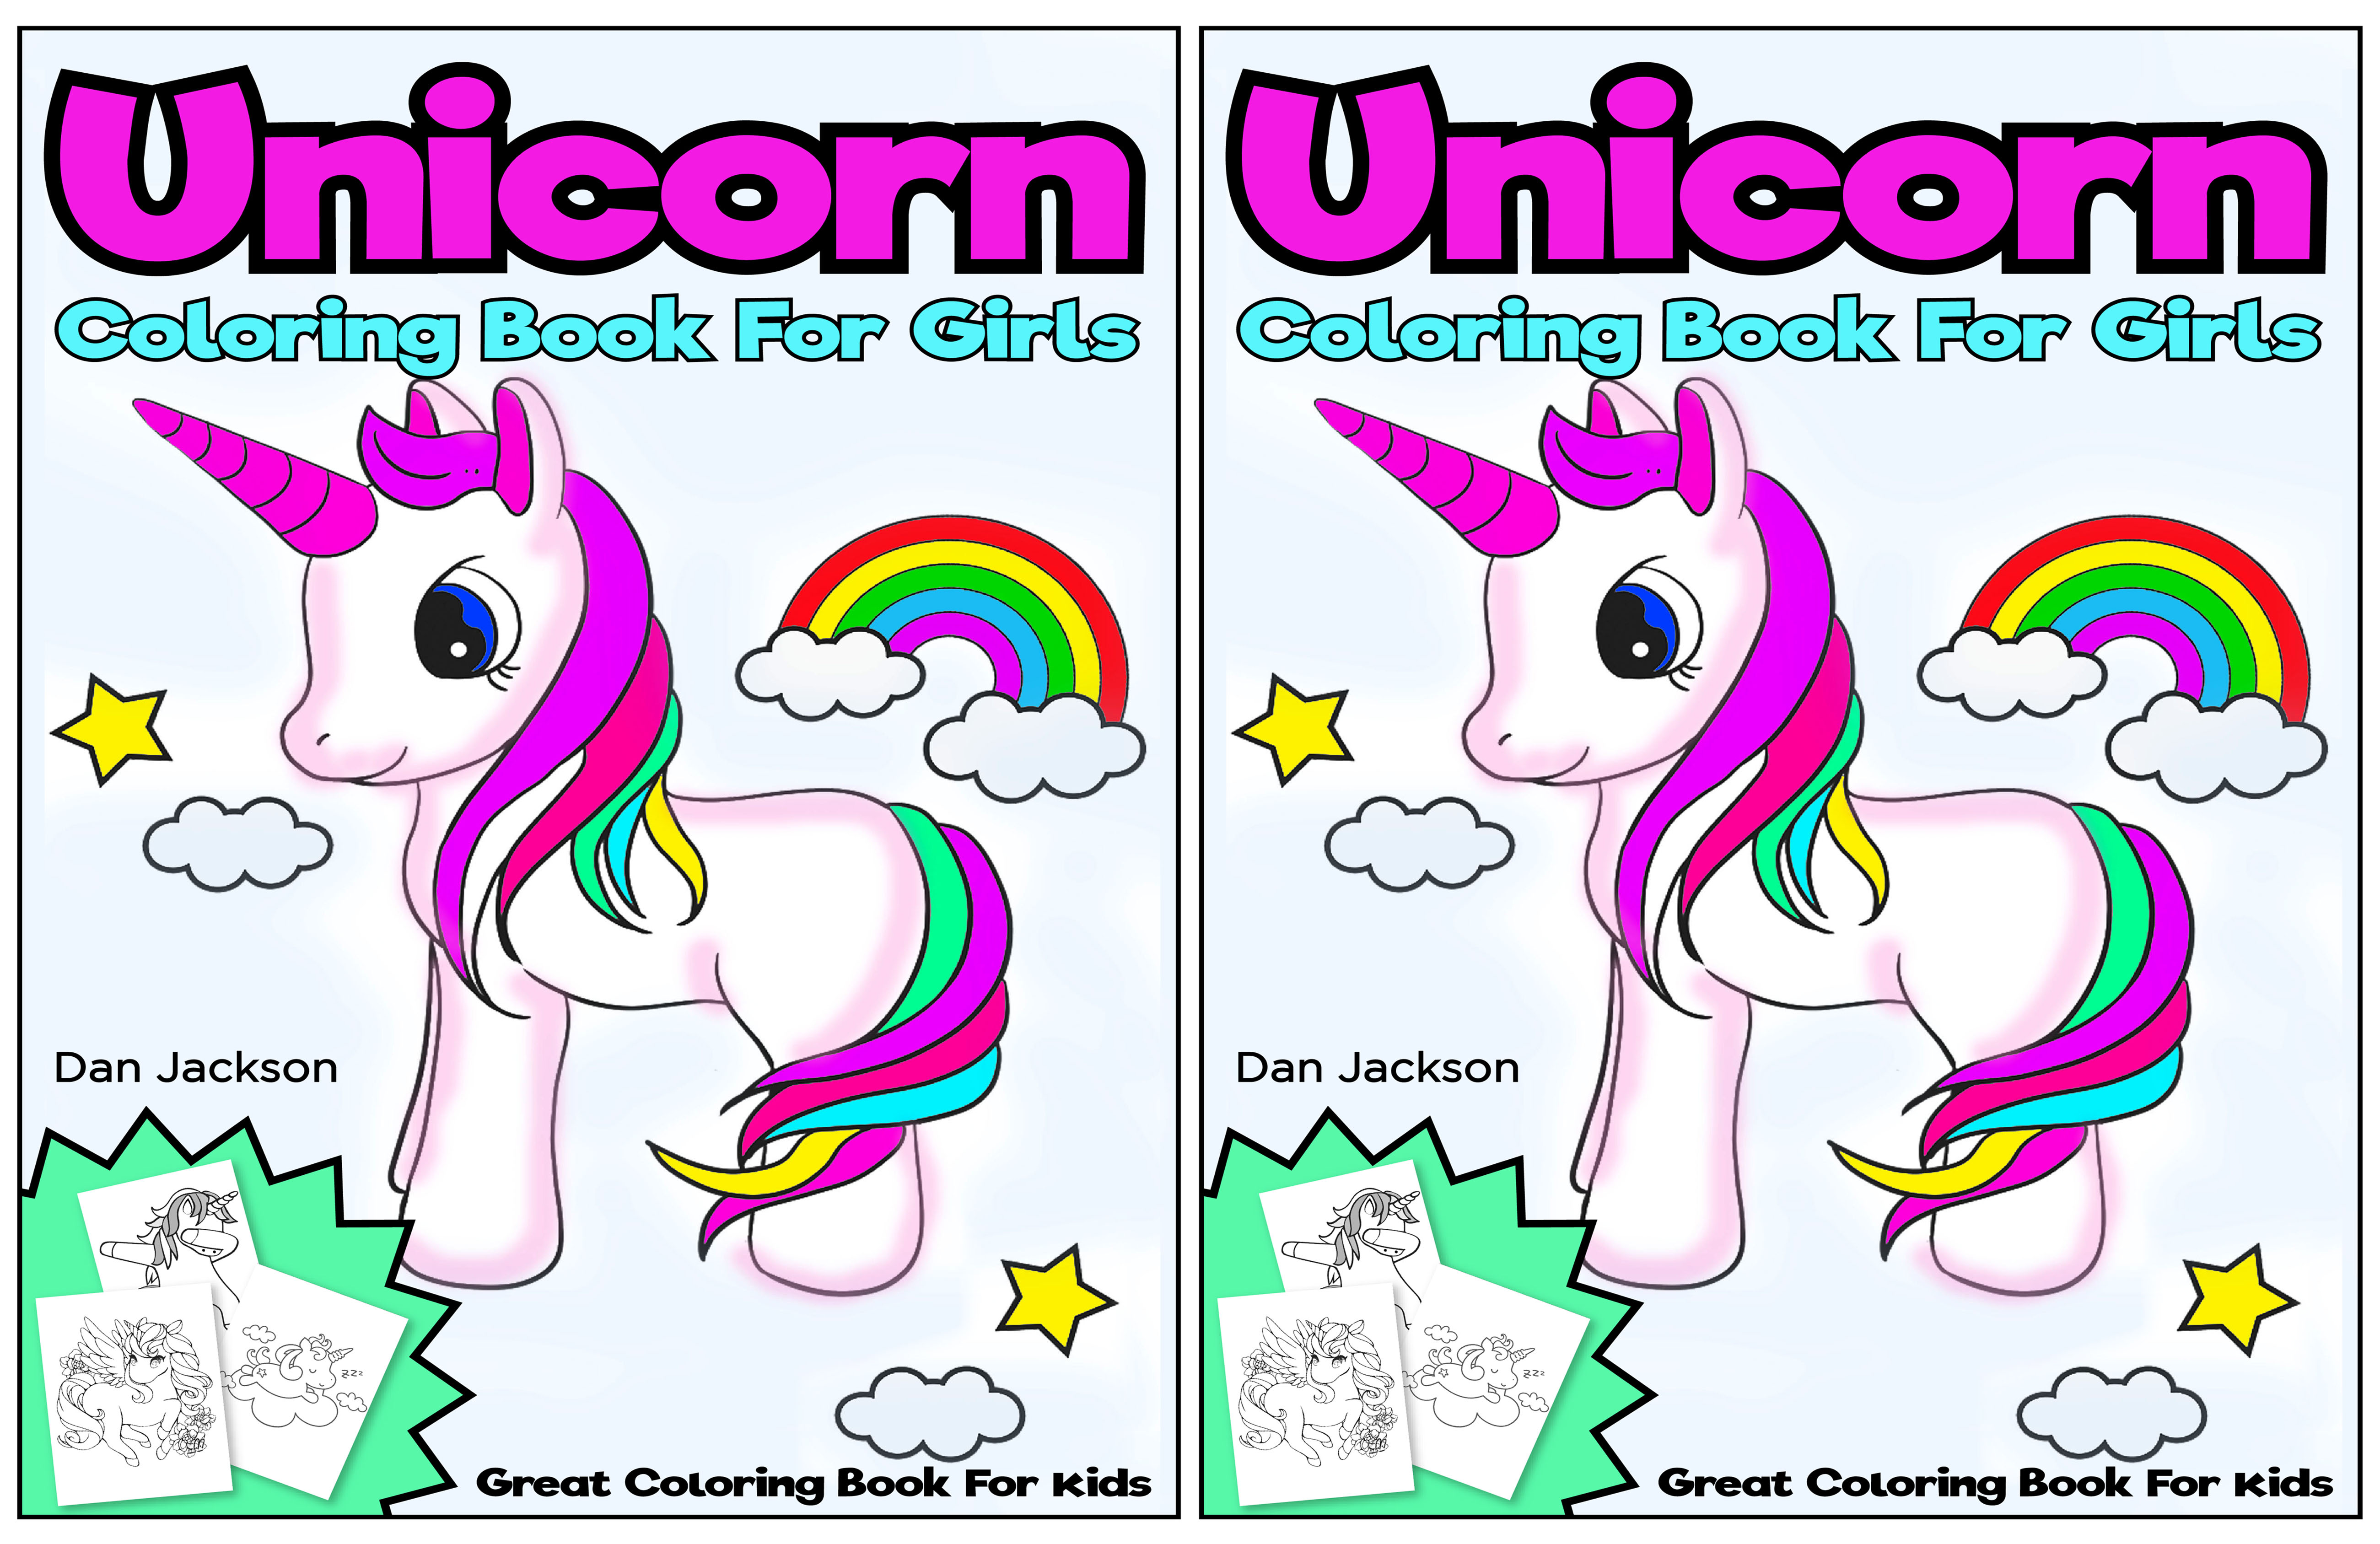 Unicorn Coloring book for girls ; Great coloring book for kids